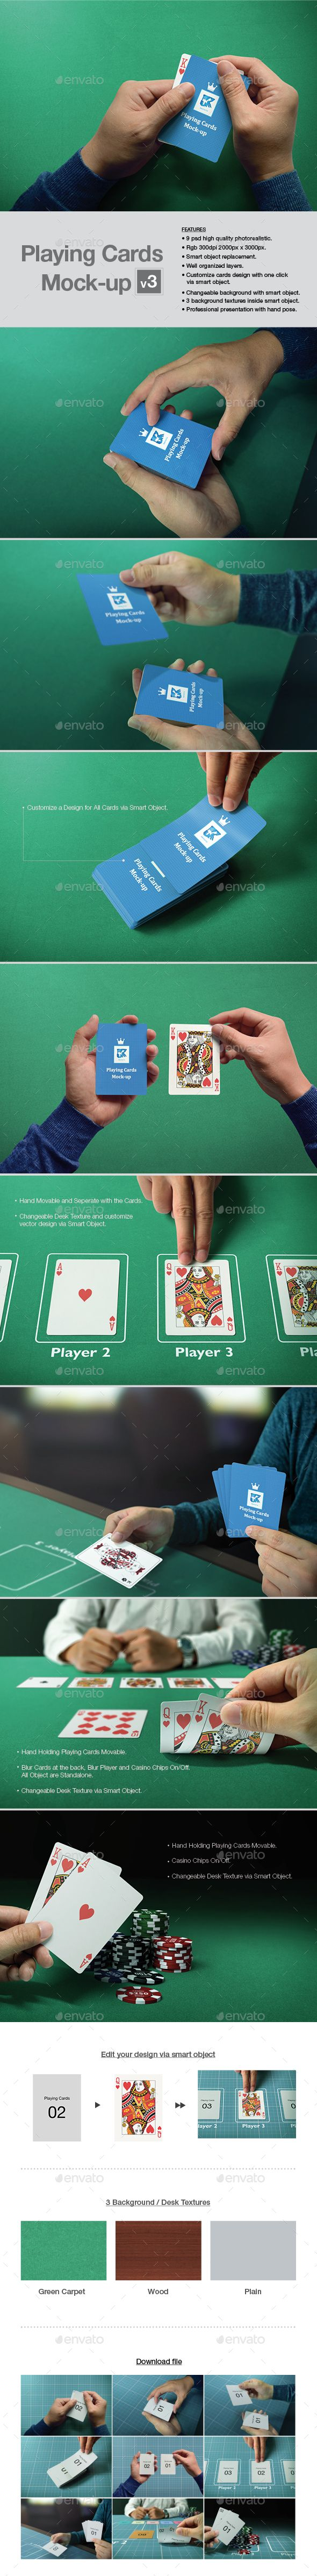 Playing Cards Mock Up Mockup Photoshop Photos Event Flyer Templates Presentation